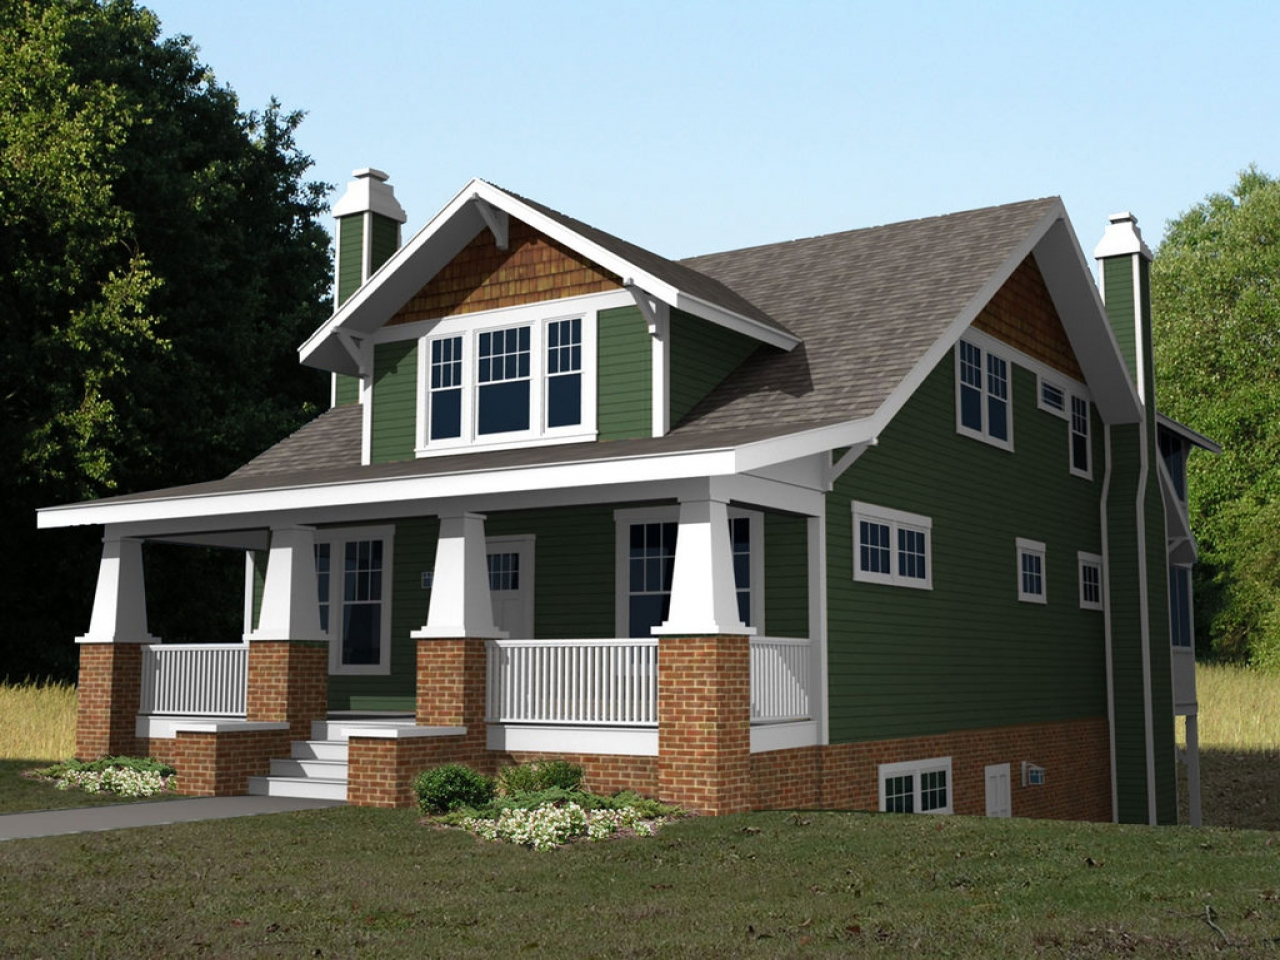 2 Story Craftsman Bungalow House Plans Second Story ...